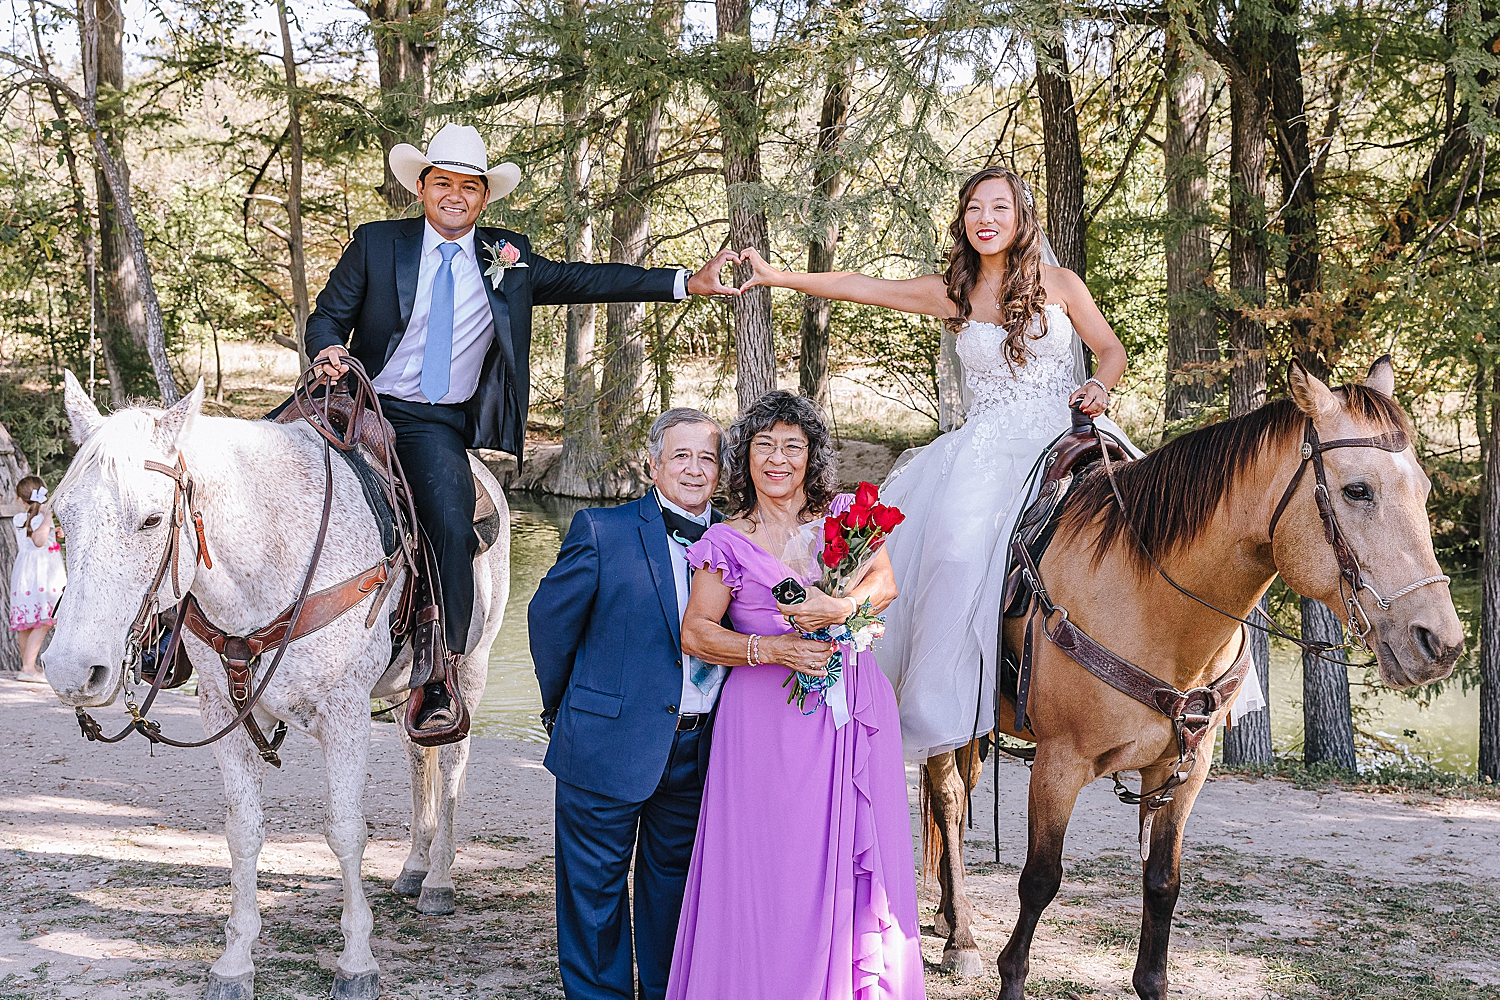 Bandera-Texas-Wedding-Photographer-Bride-Groom-on-Horses-Carly-Barton-Photography_0112.jpg